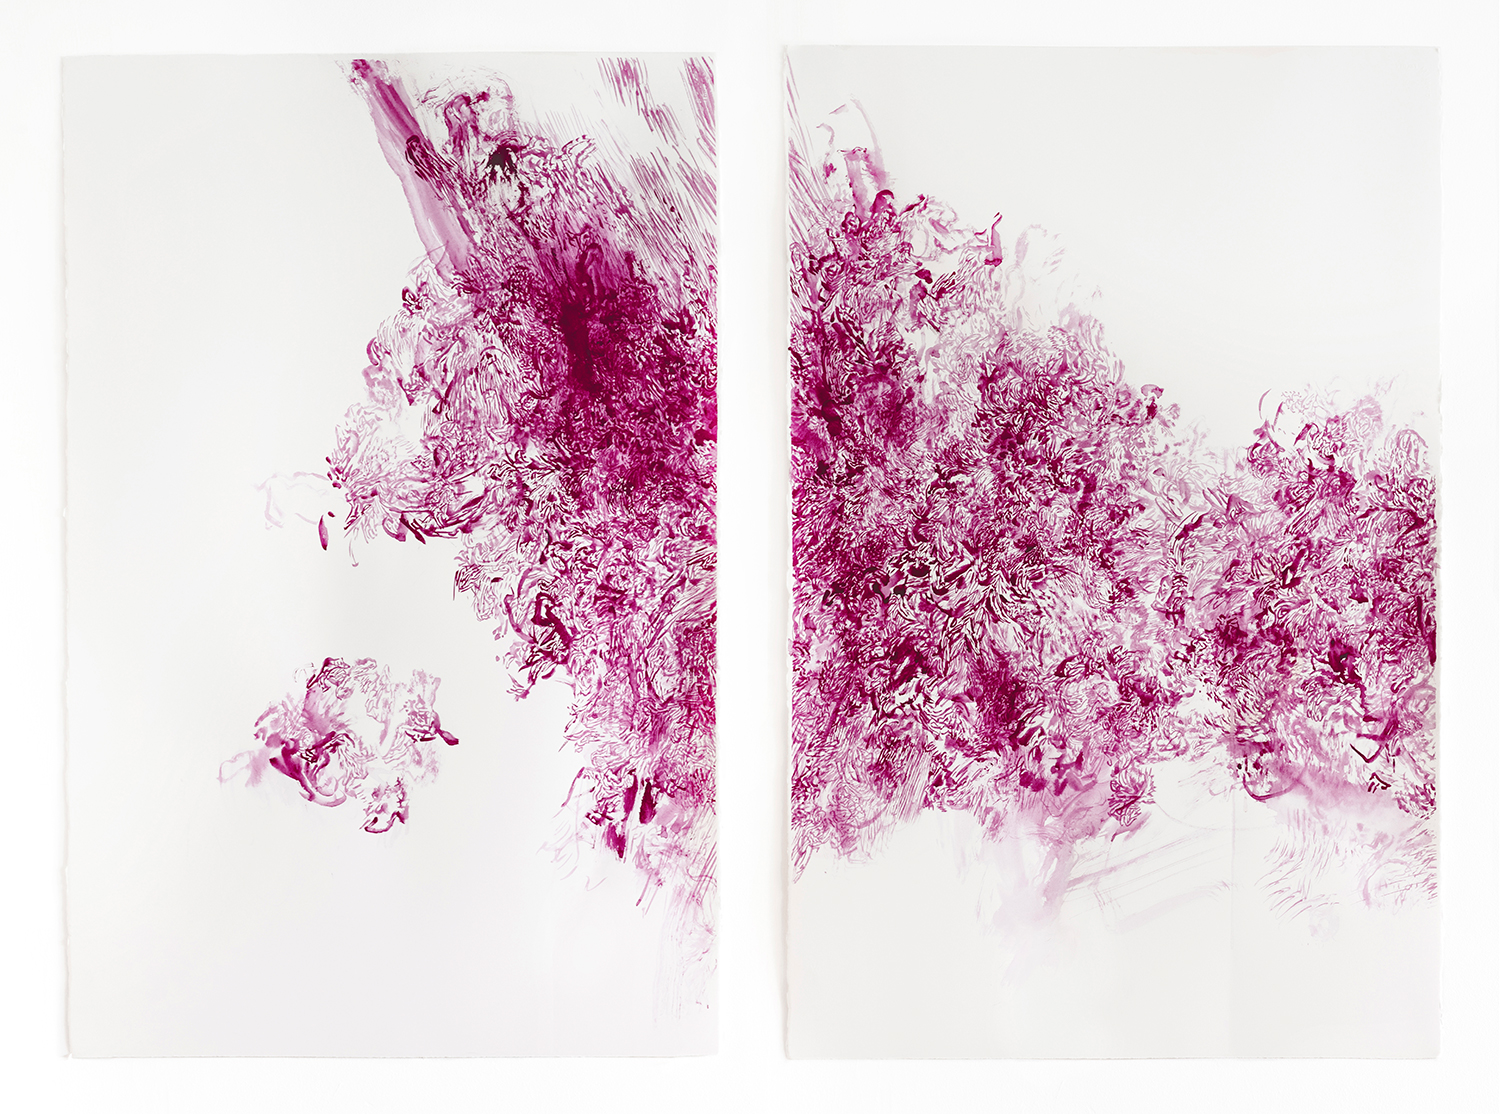 Tangled Hierarchy II Permanent magenta